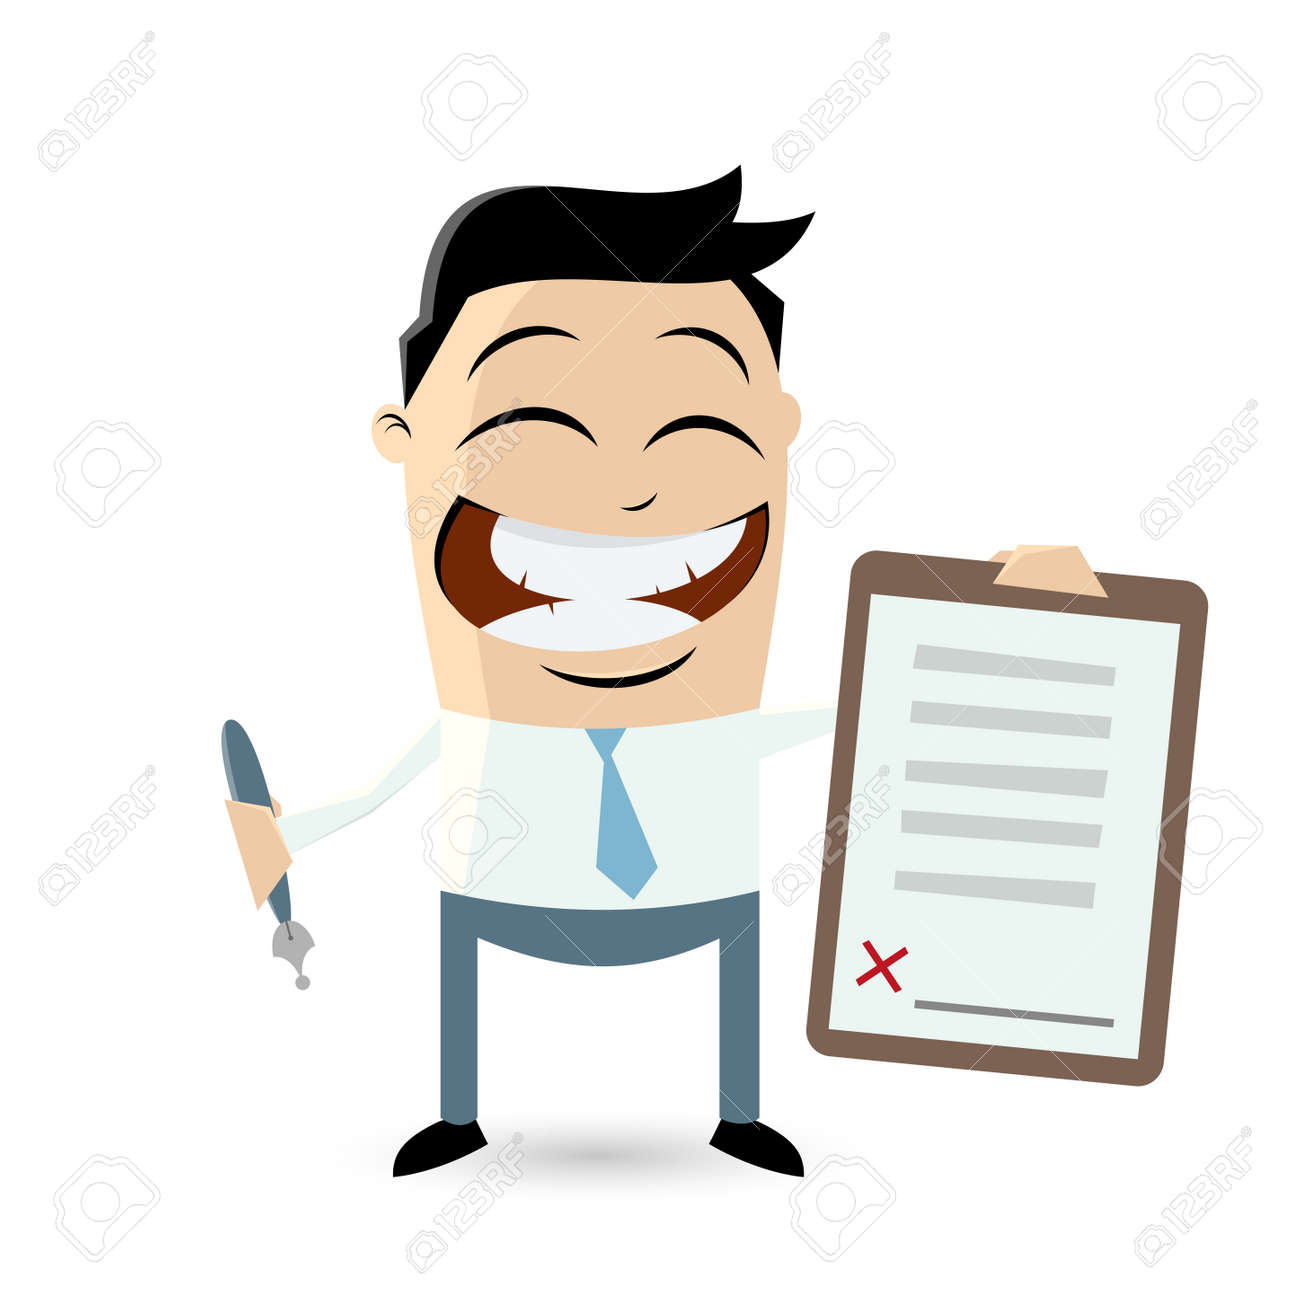 funny businessman with contract ready for signature - 31239194